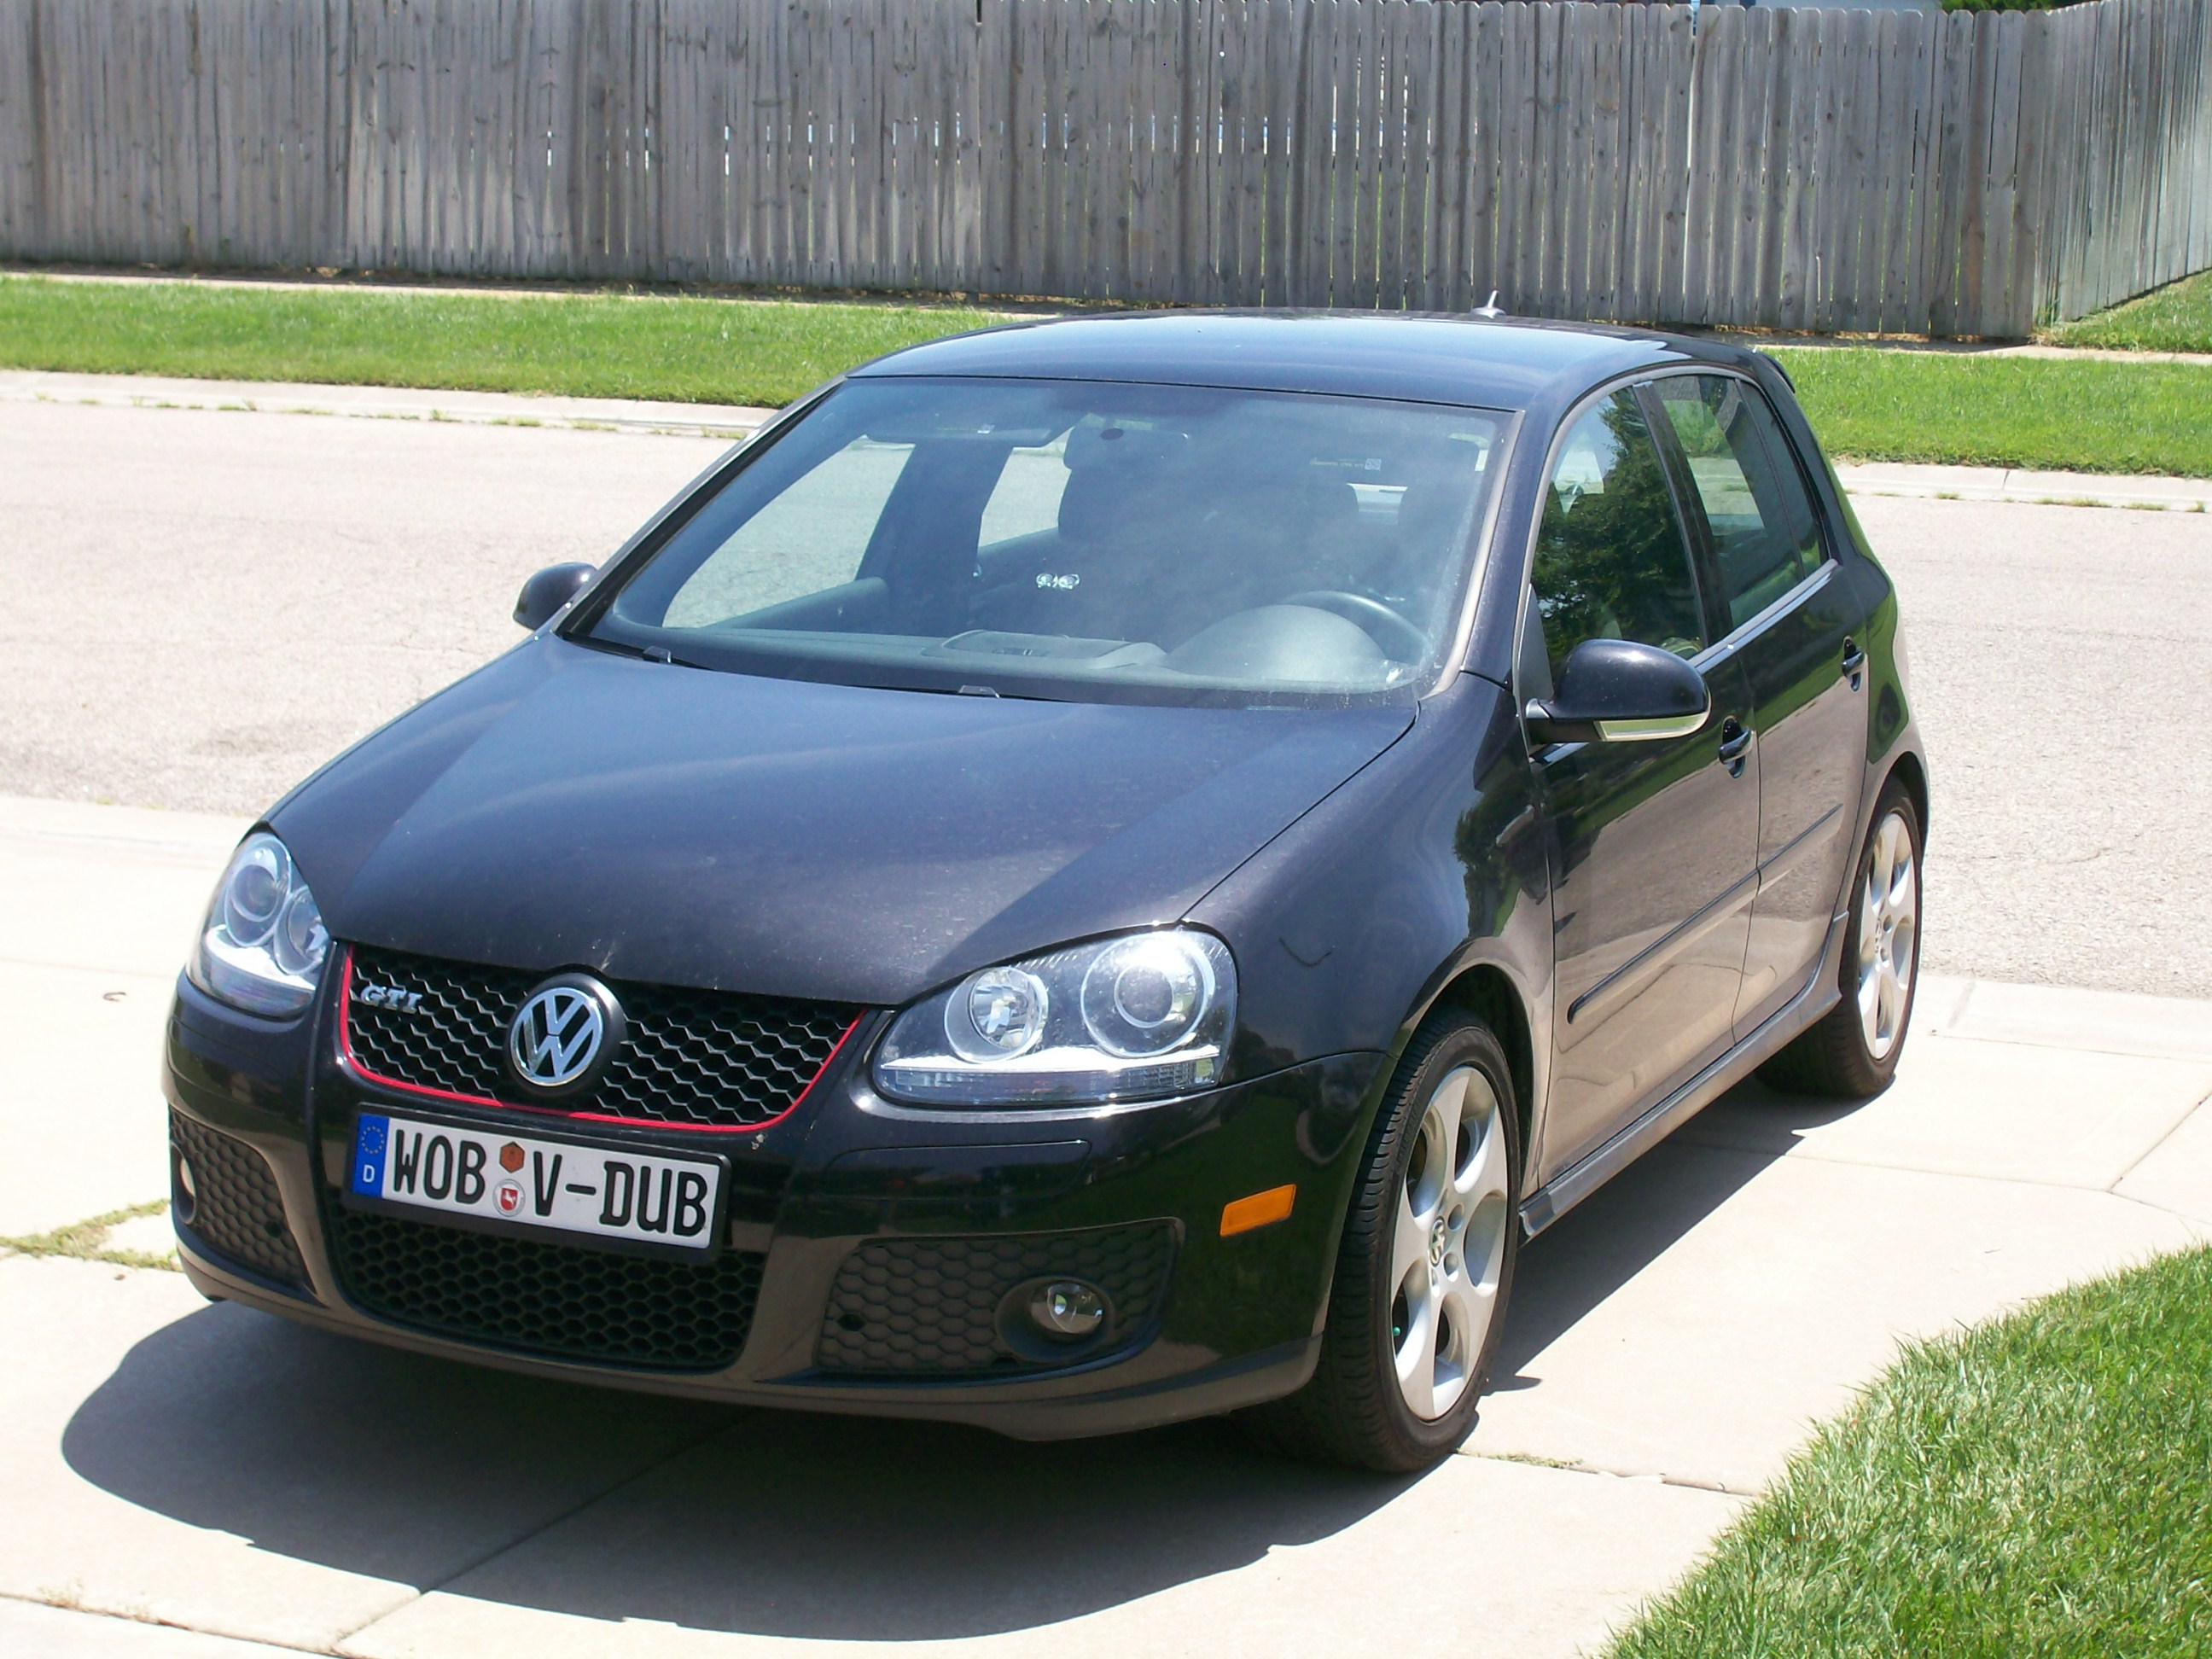 Vw Gti 0 60 >> 2008 Volkswagen Gti Dsg 1 4 Mile Trap Speeds 0 60 Dragtimes Com